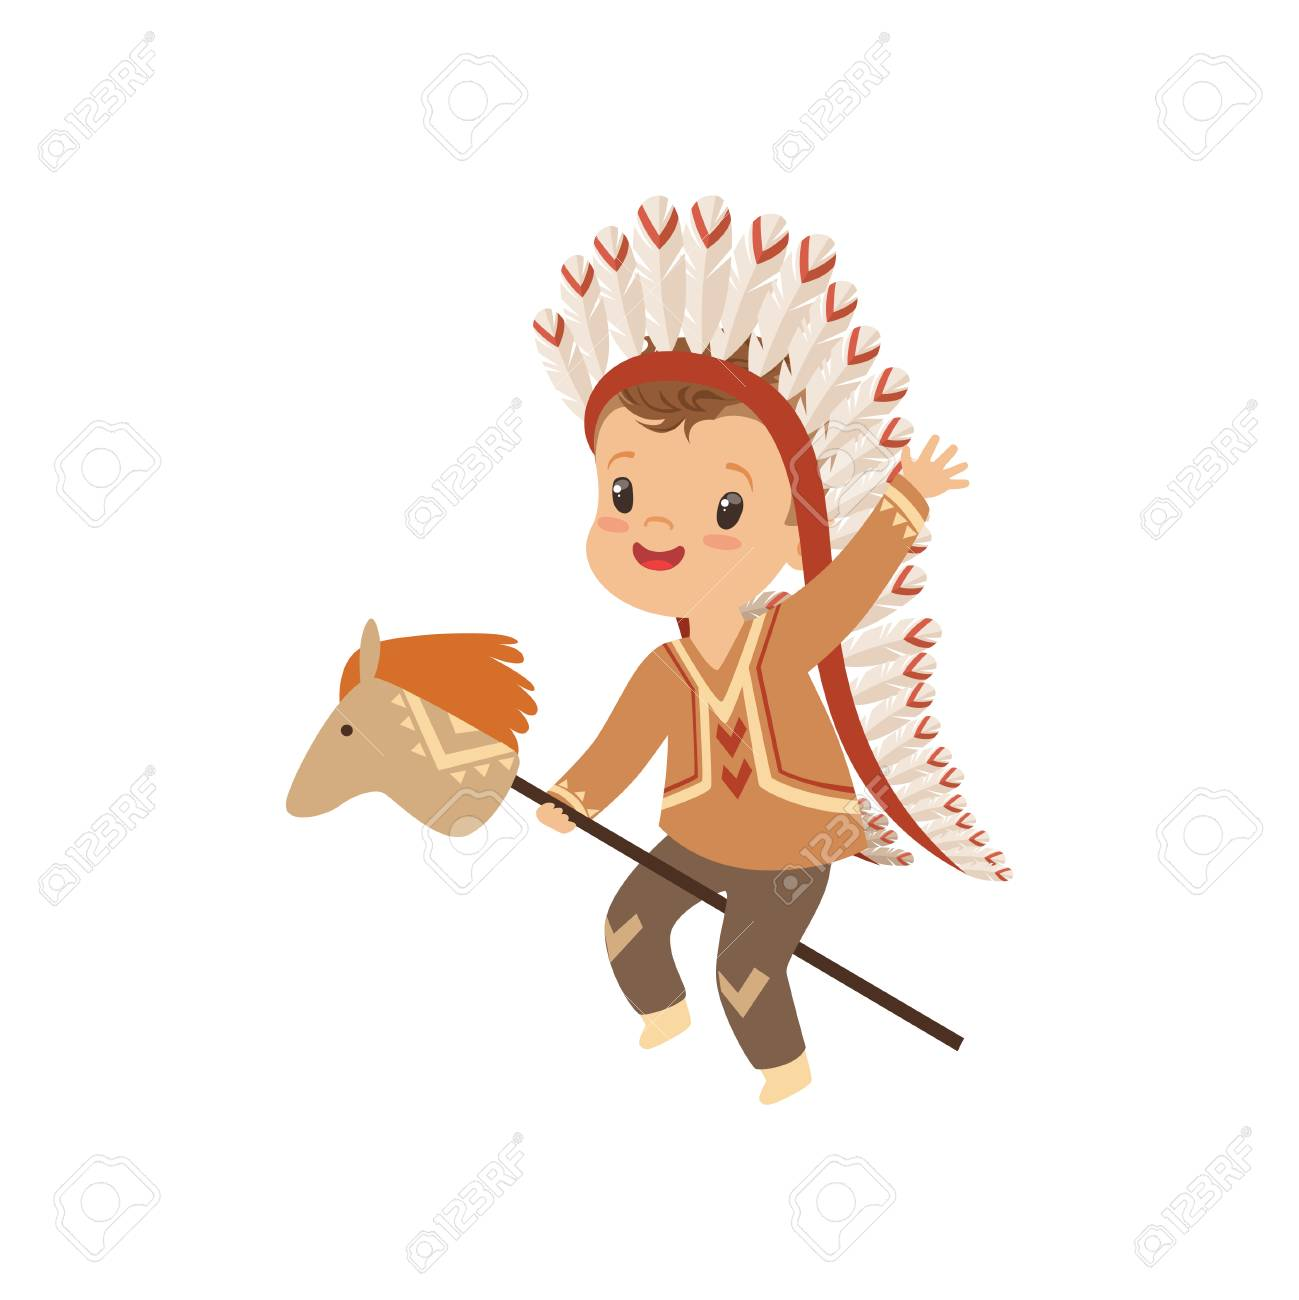 Boy Wearing Native Indian Costume And Headdress Riding Stick Royalty Free Cliparts Vectors And Stock Illustration Image 111564089